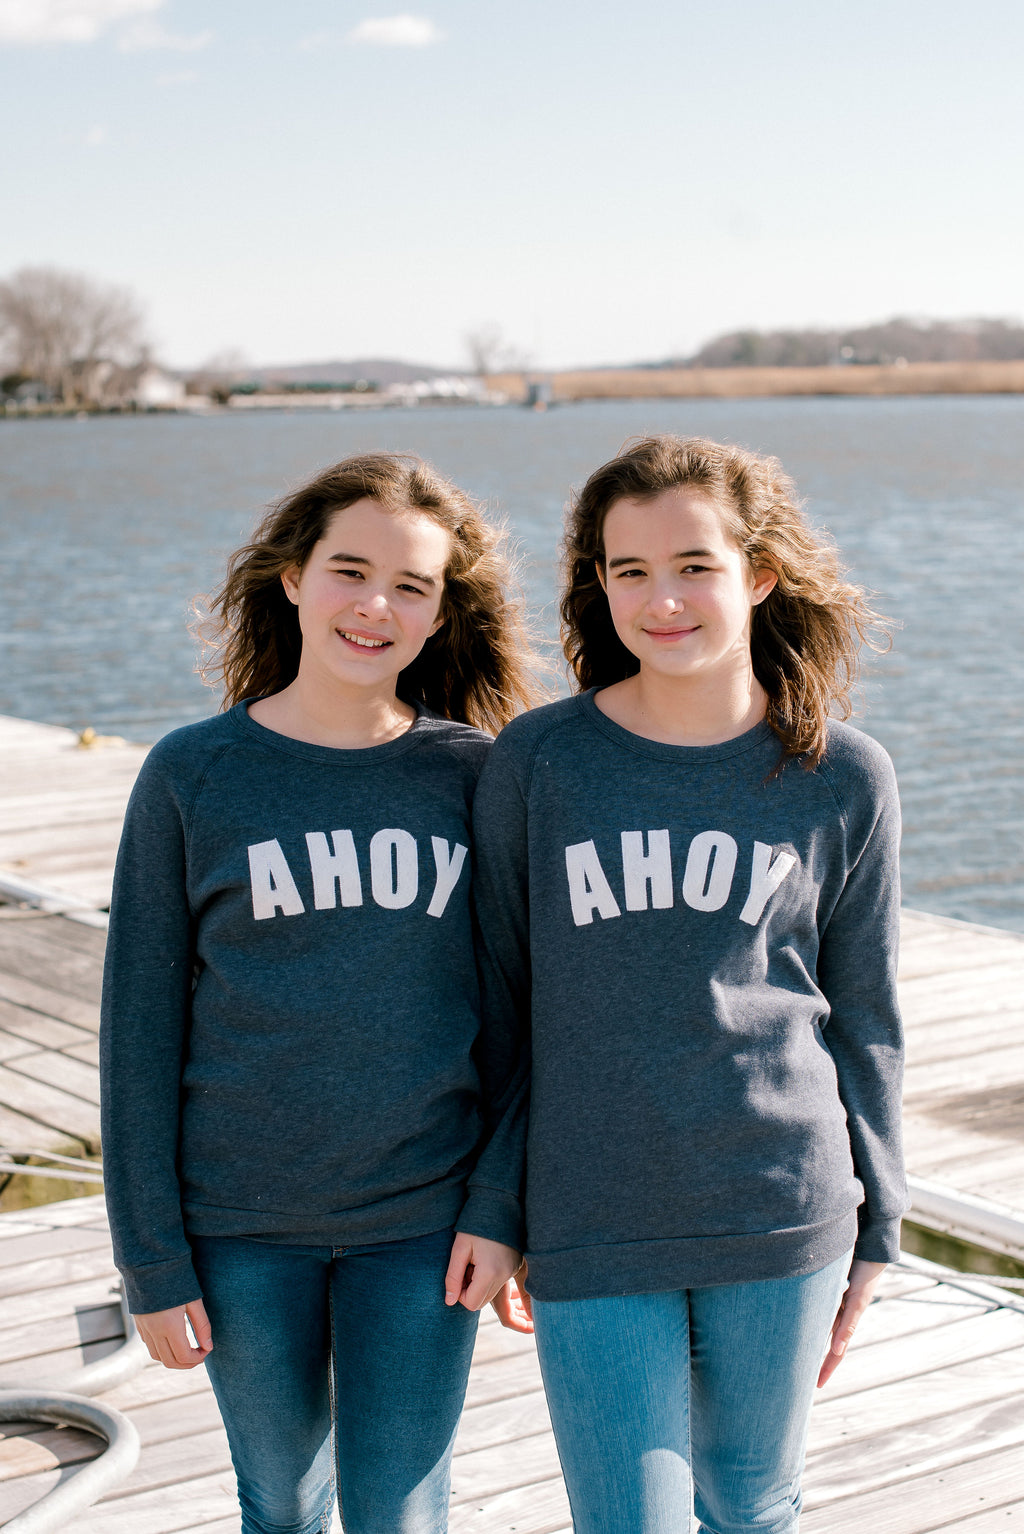 You, Me & The Sea ahoy crewneck